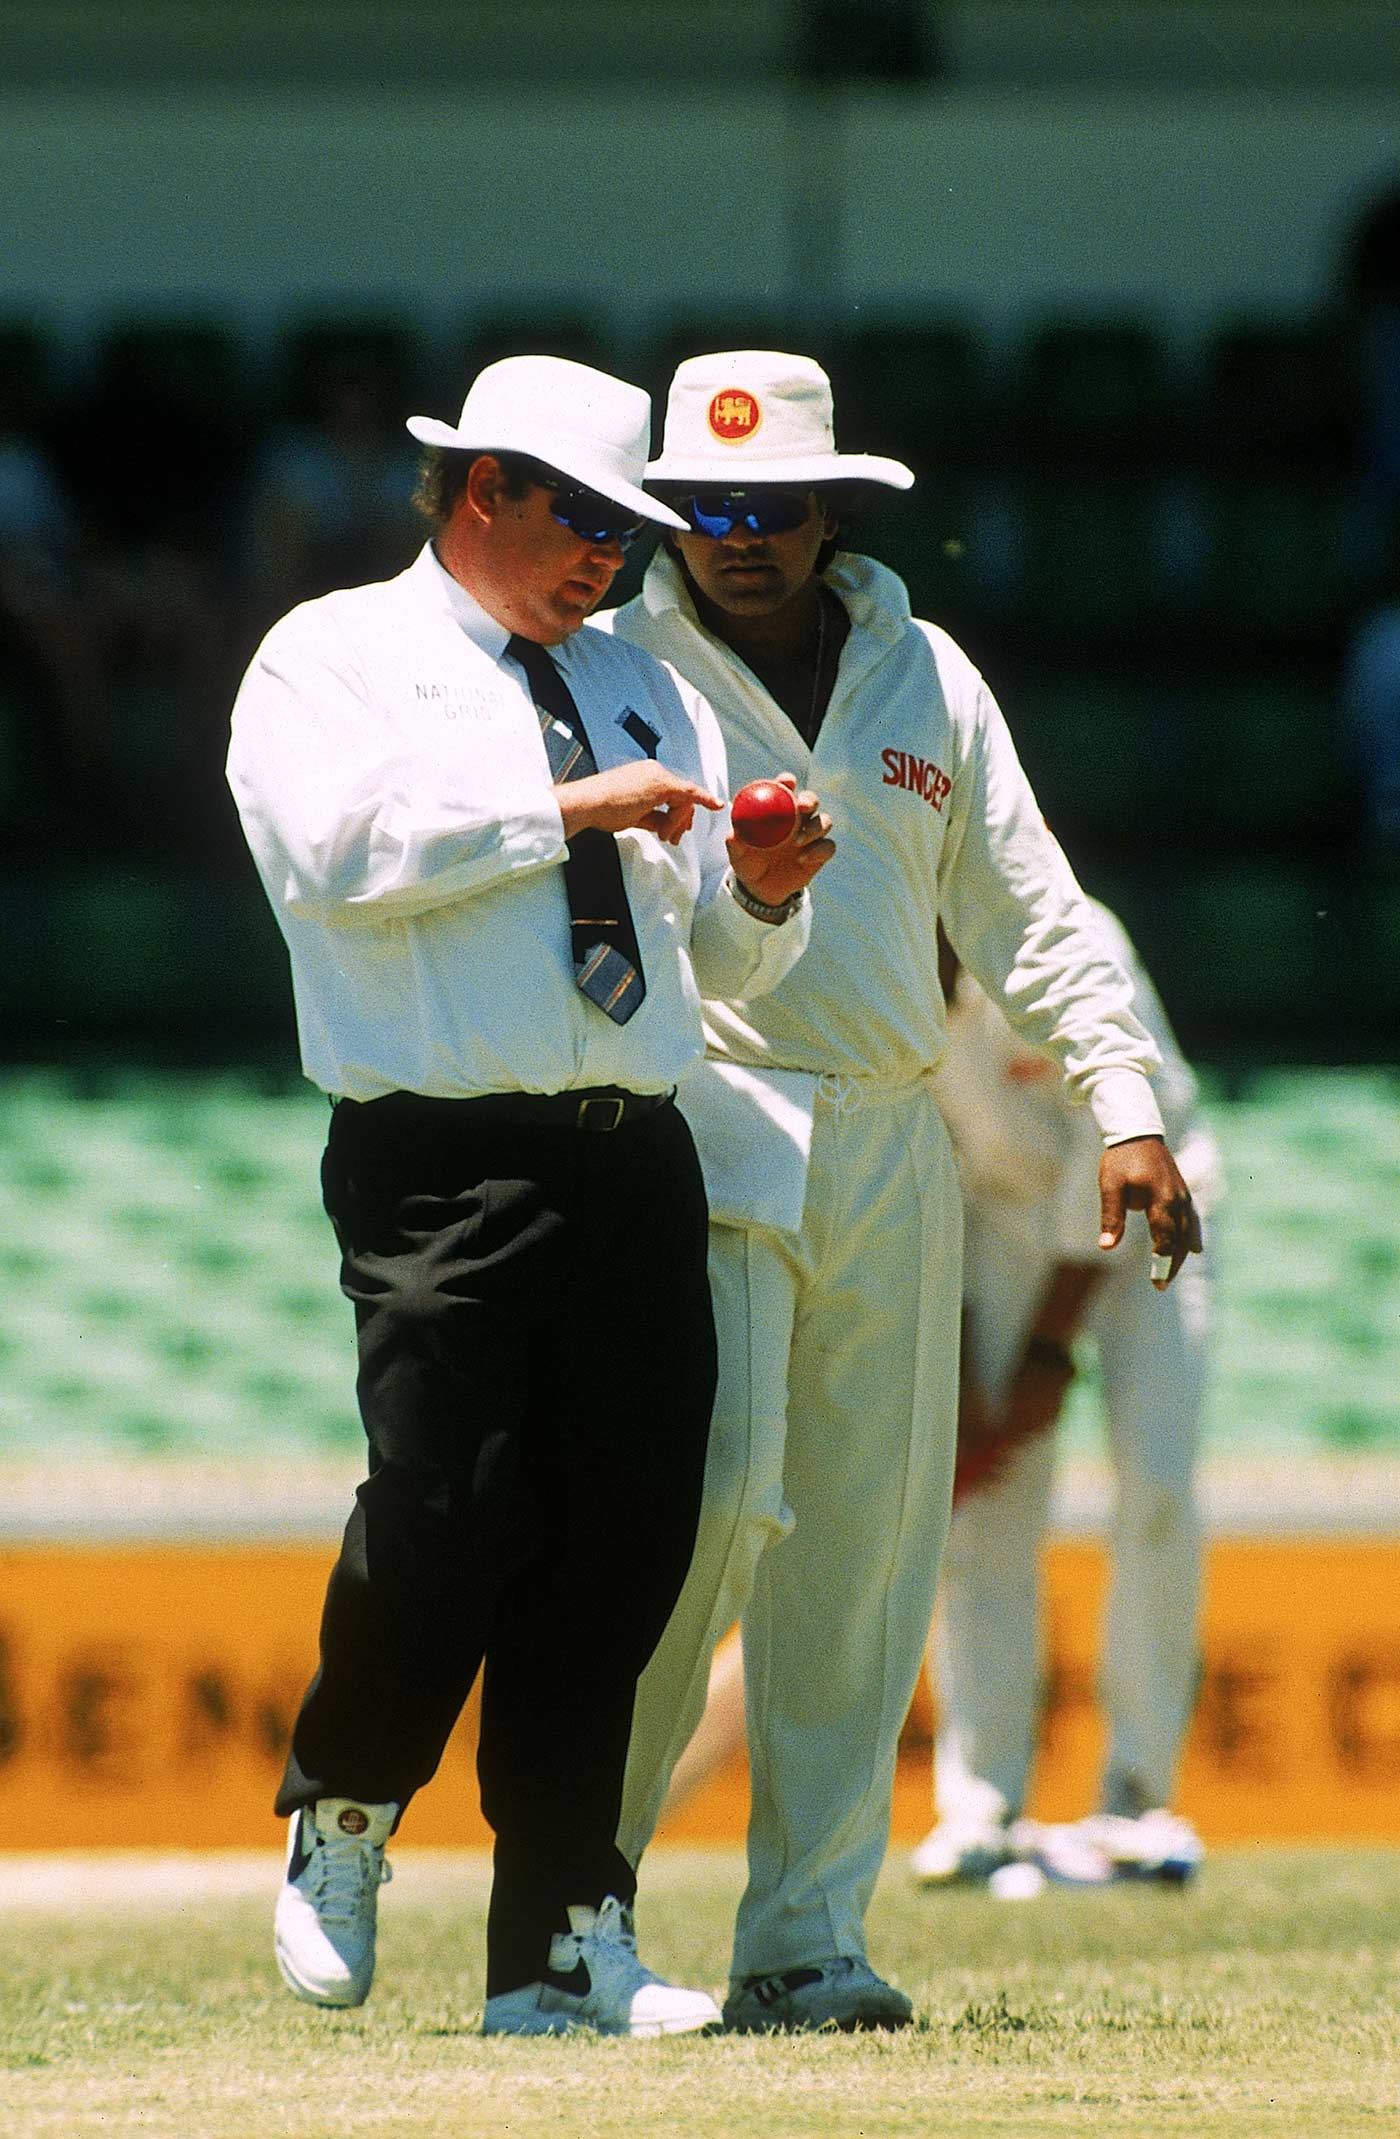 Taking a long, hard look at the ball with Peter Parker in Perth, 1995